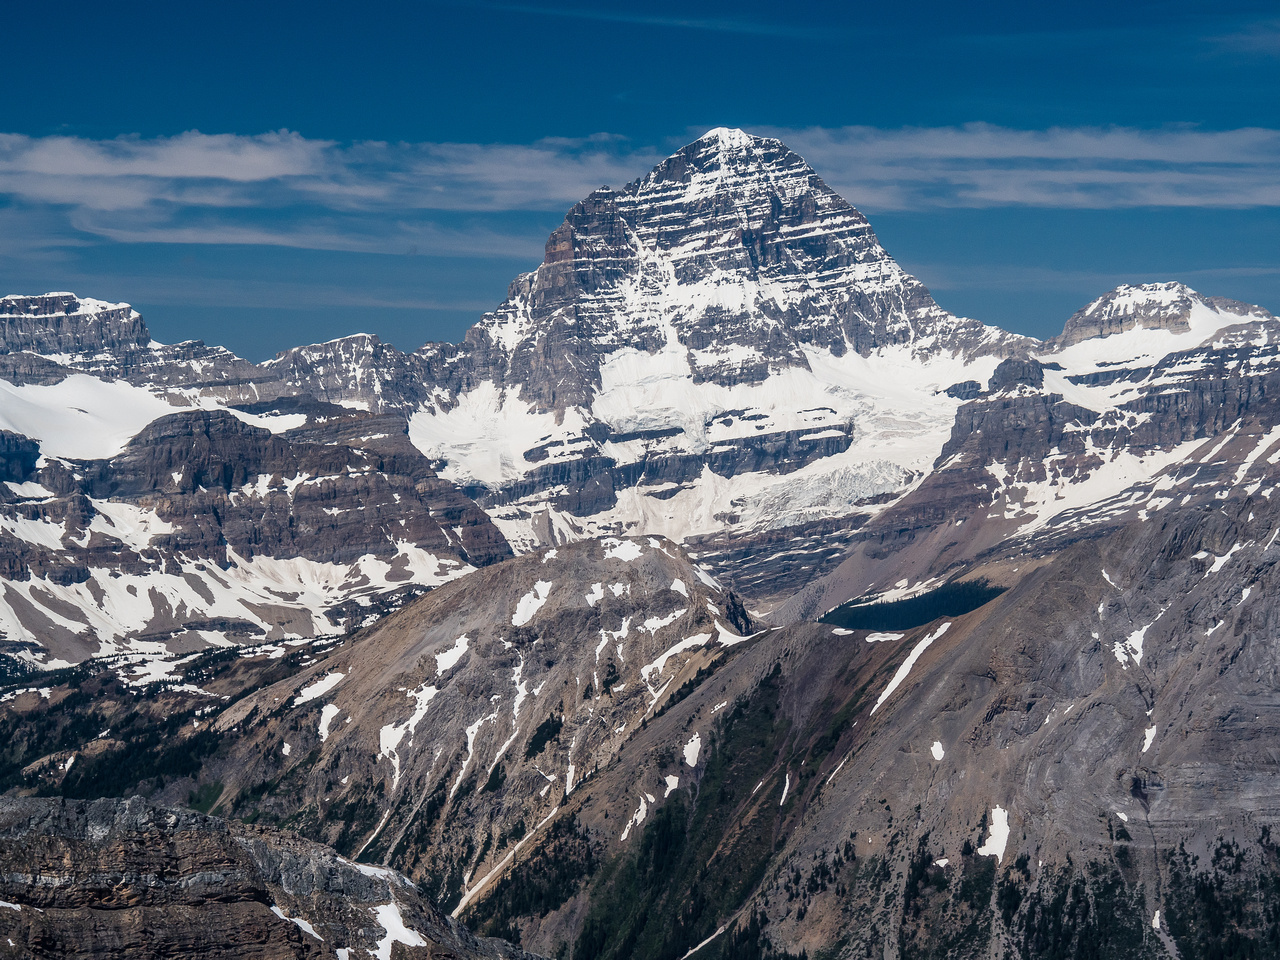 I'm proud of standing on top of Assiniboine - one of my all time favorite days in the mountains.